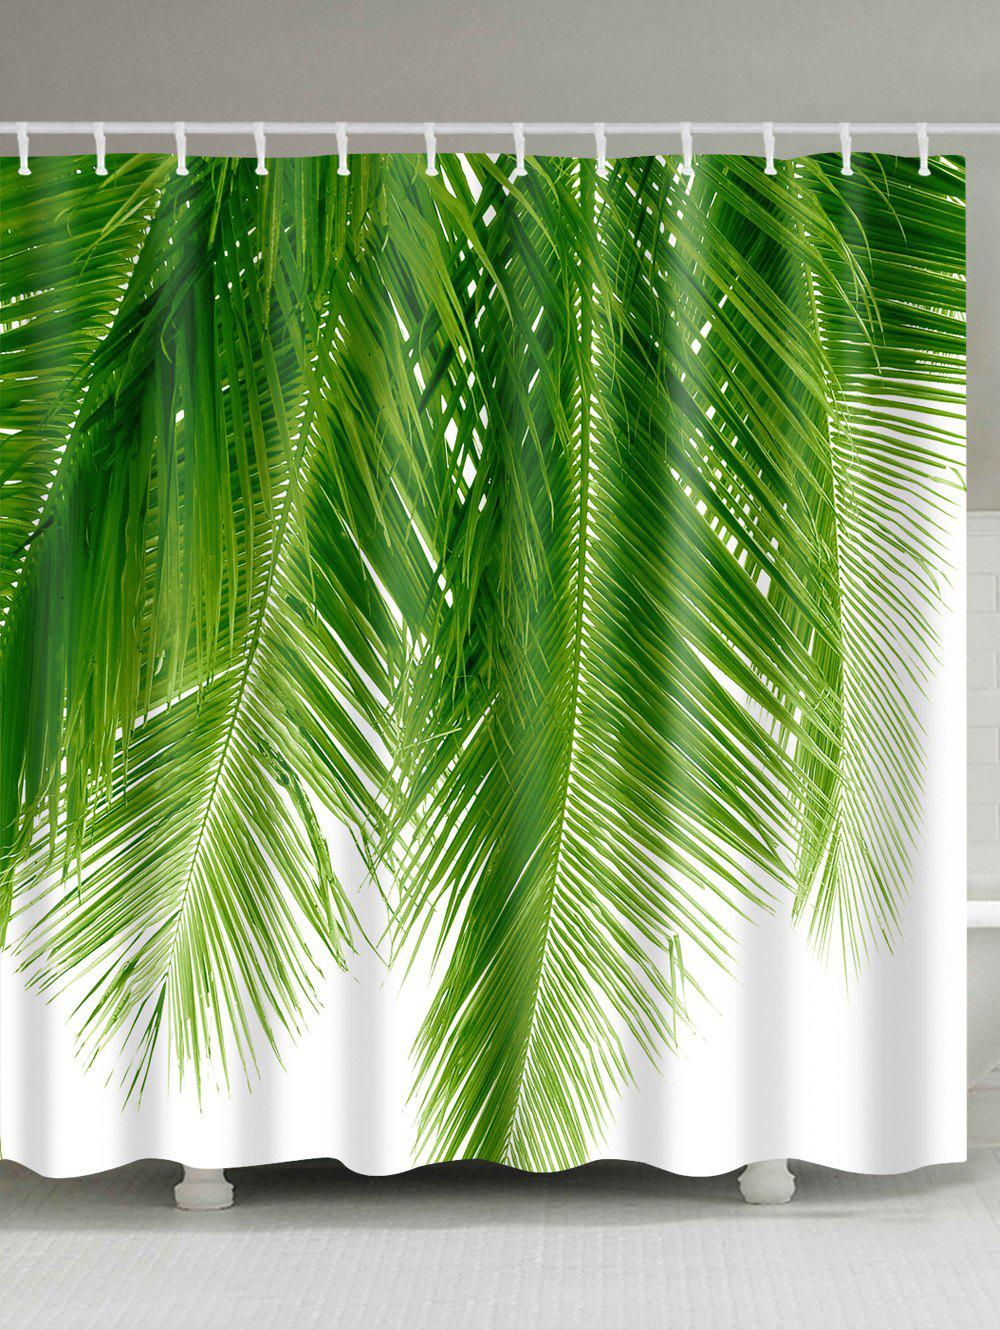 Palm Tree Leaf Print Waterproof Fabric Bathroom Shower Curtain